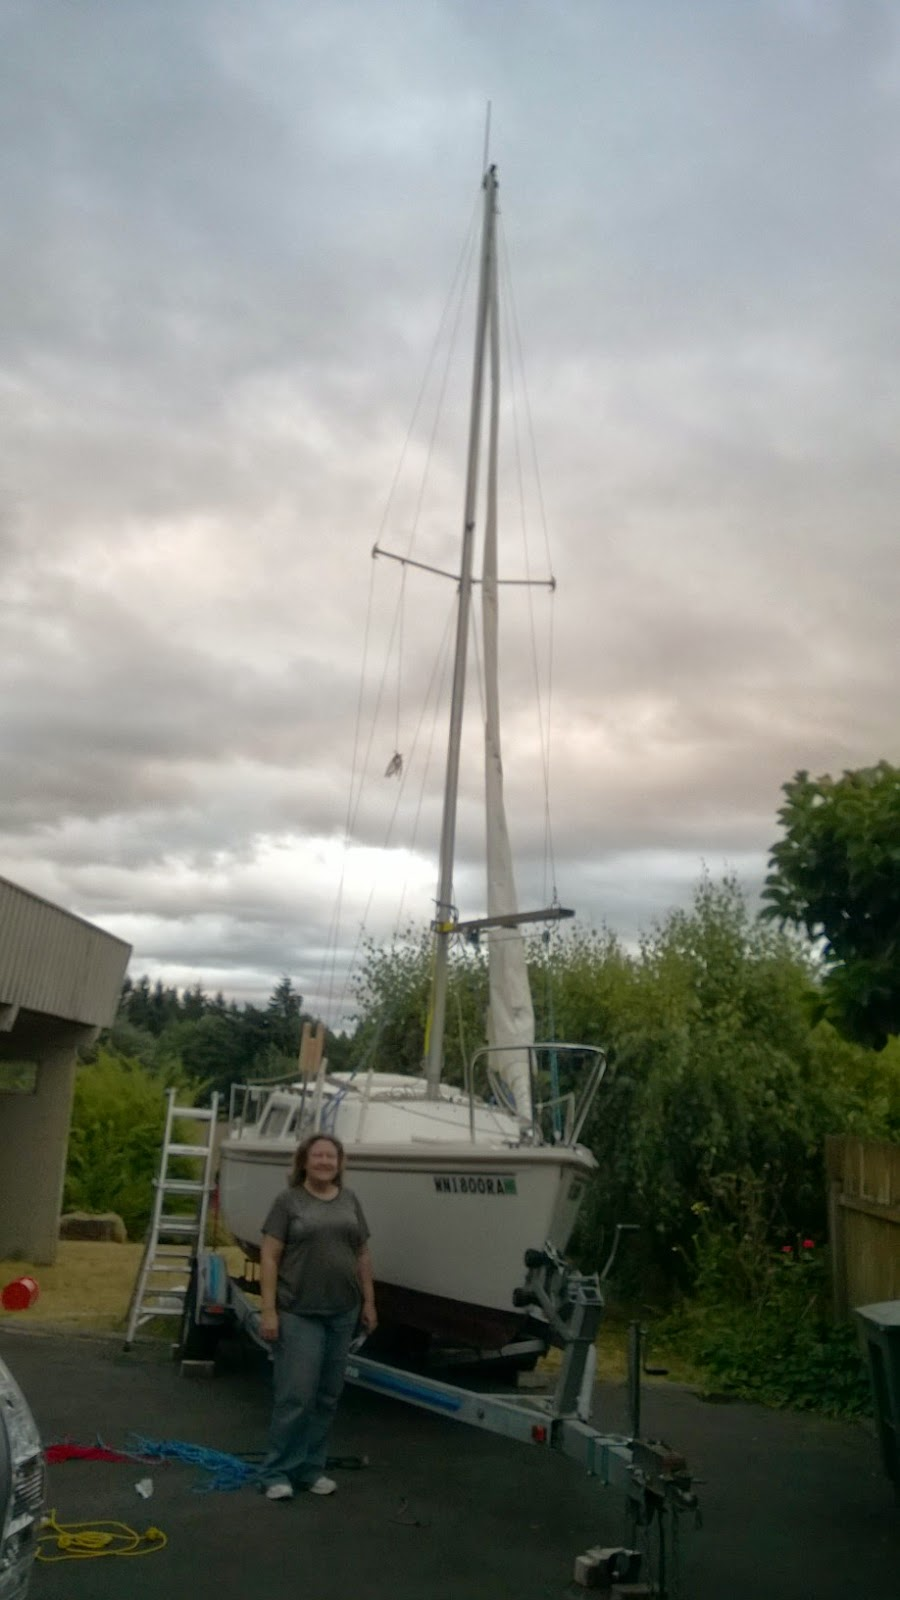 Catalina 22 with the mast raised